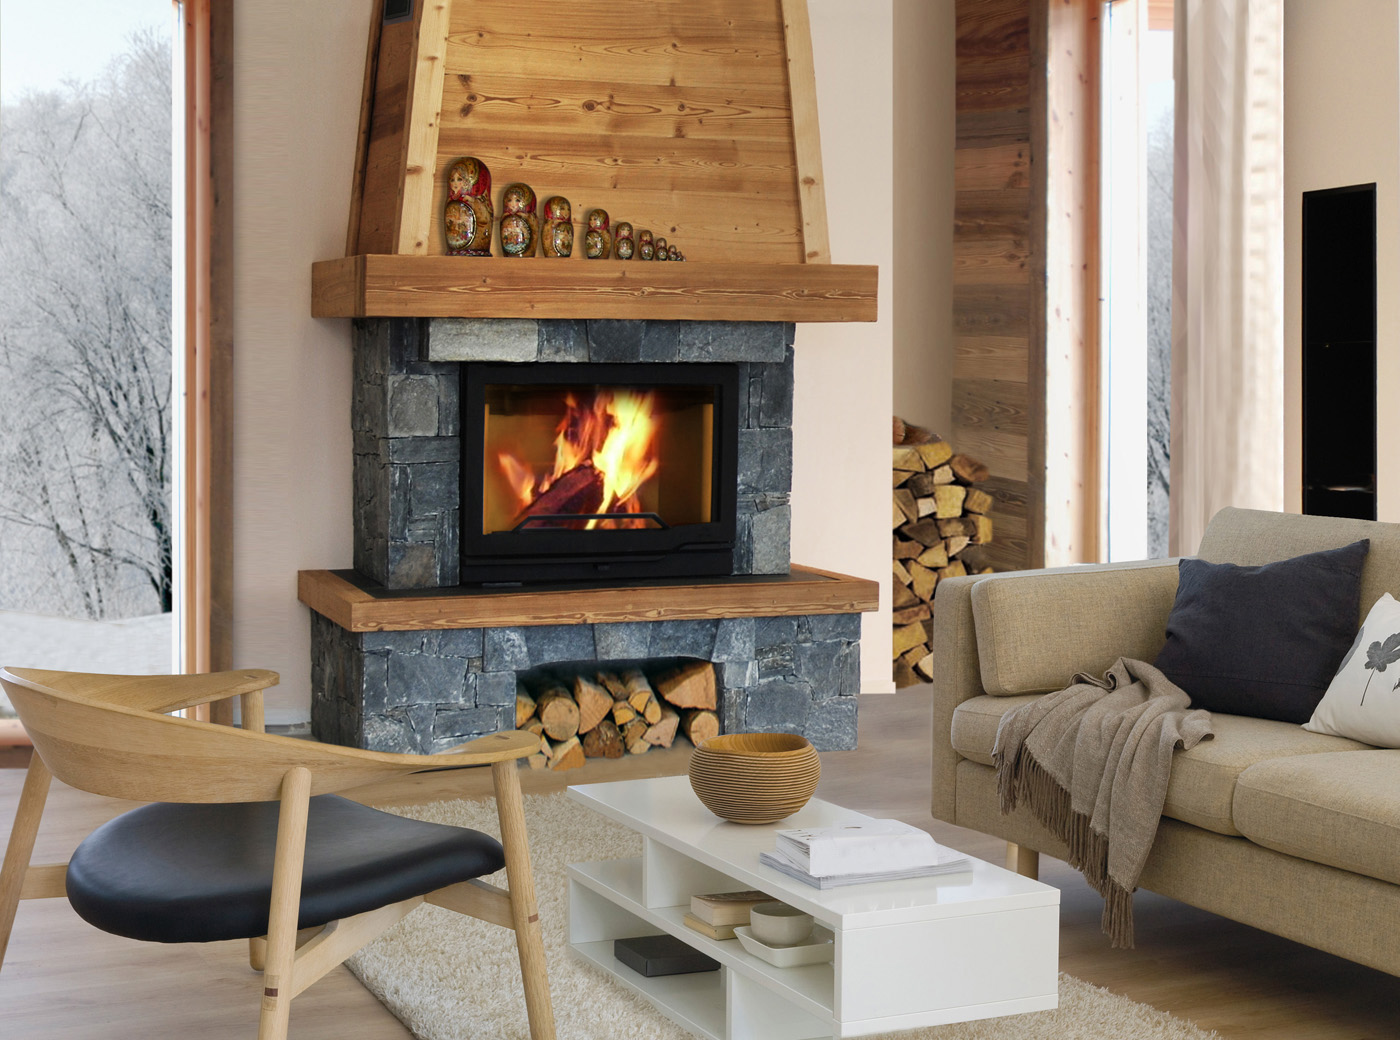 inserts jotul scan ils combattent le froid pour votre confort. Black Bedroom Furniture Sets. Home Design Ideas